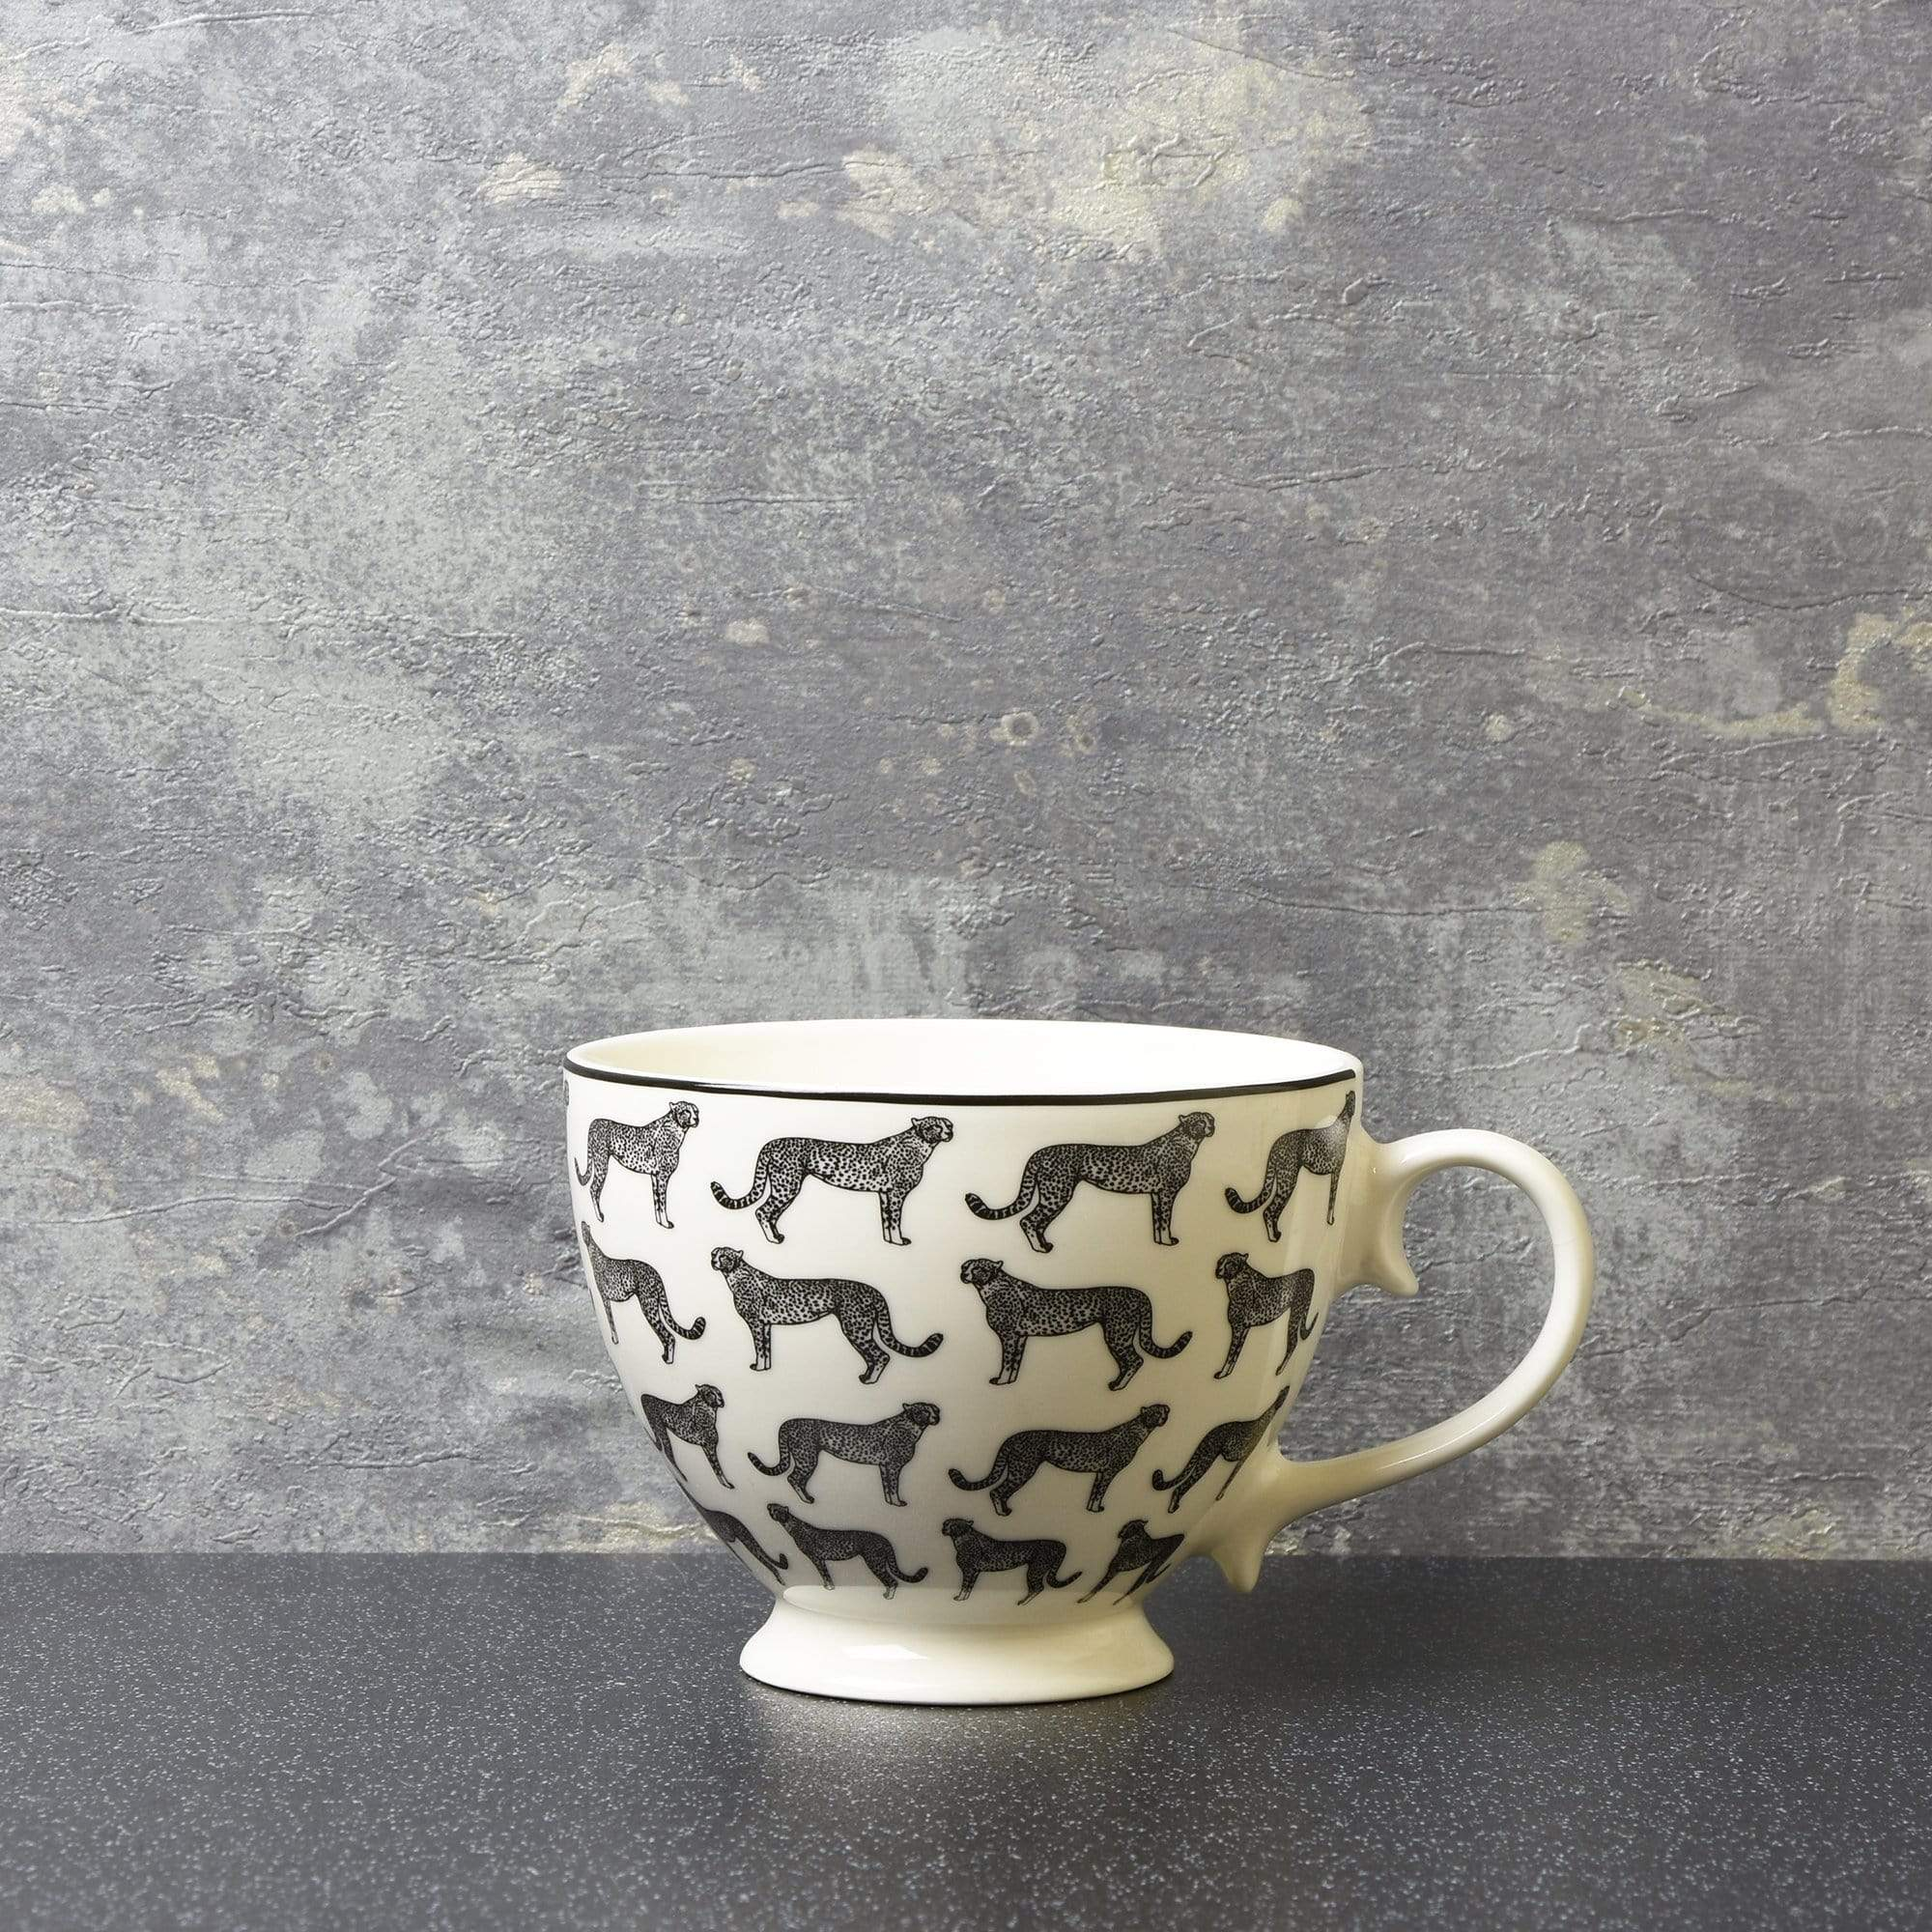 Animal Luxe Footed Mug All Over Leopard Print Black 6PK